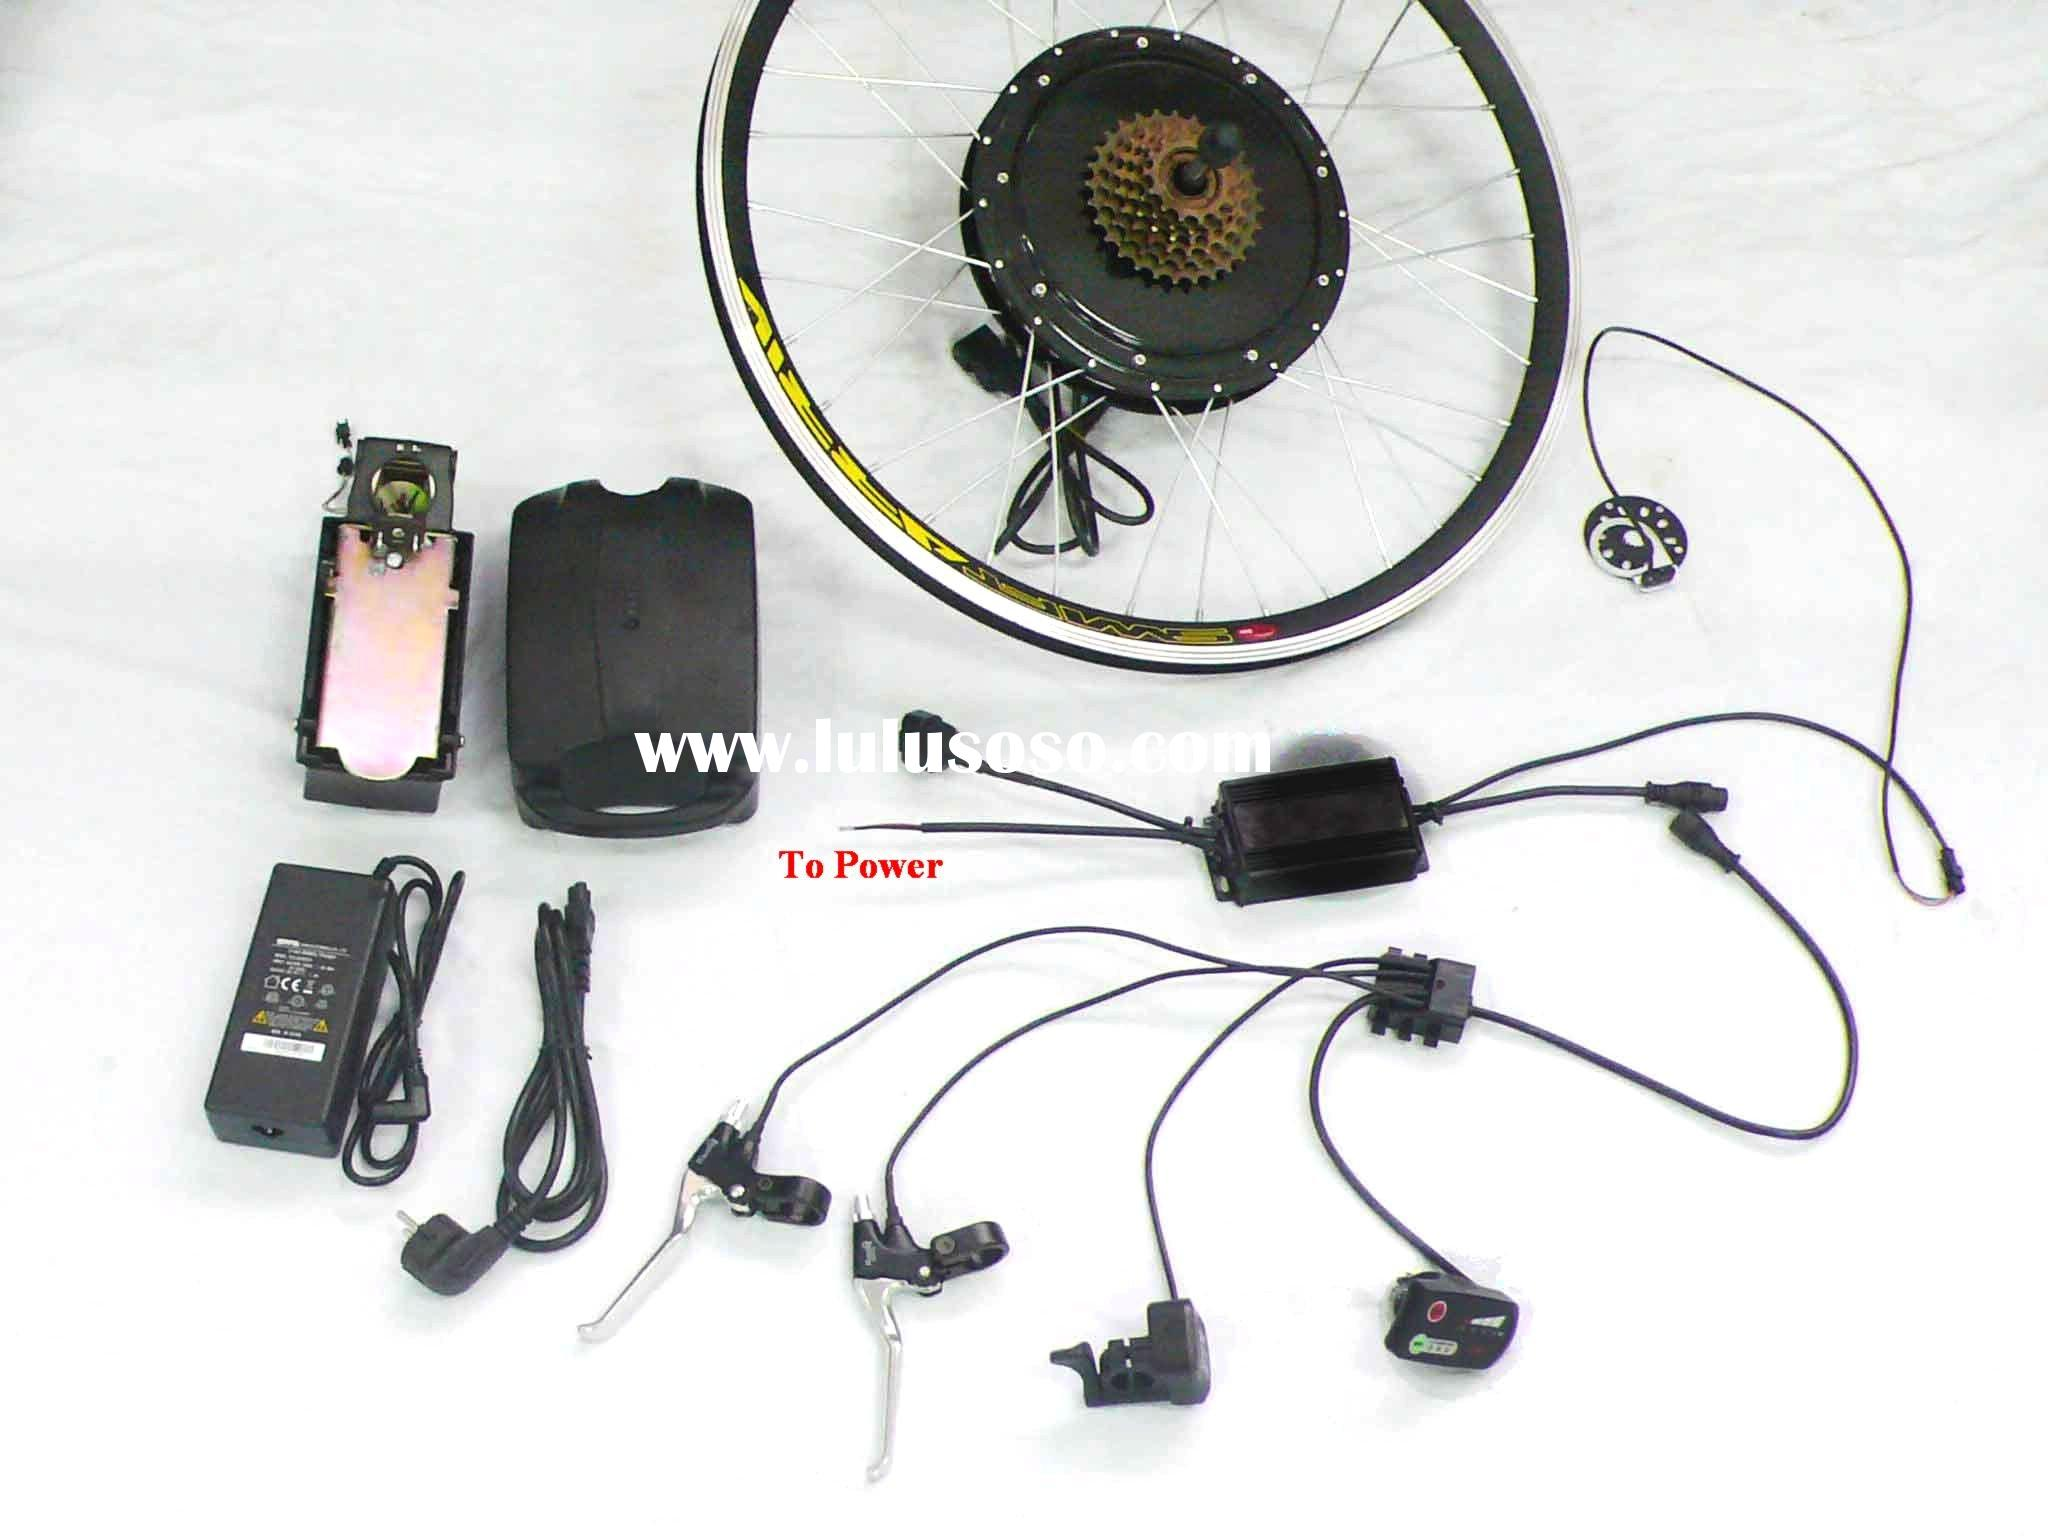 Electric Bike Motor Kit Auto Fan Manufacturers In Lulusosocom Images Of